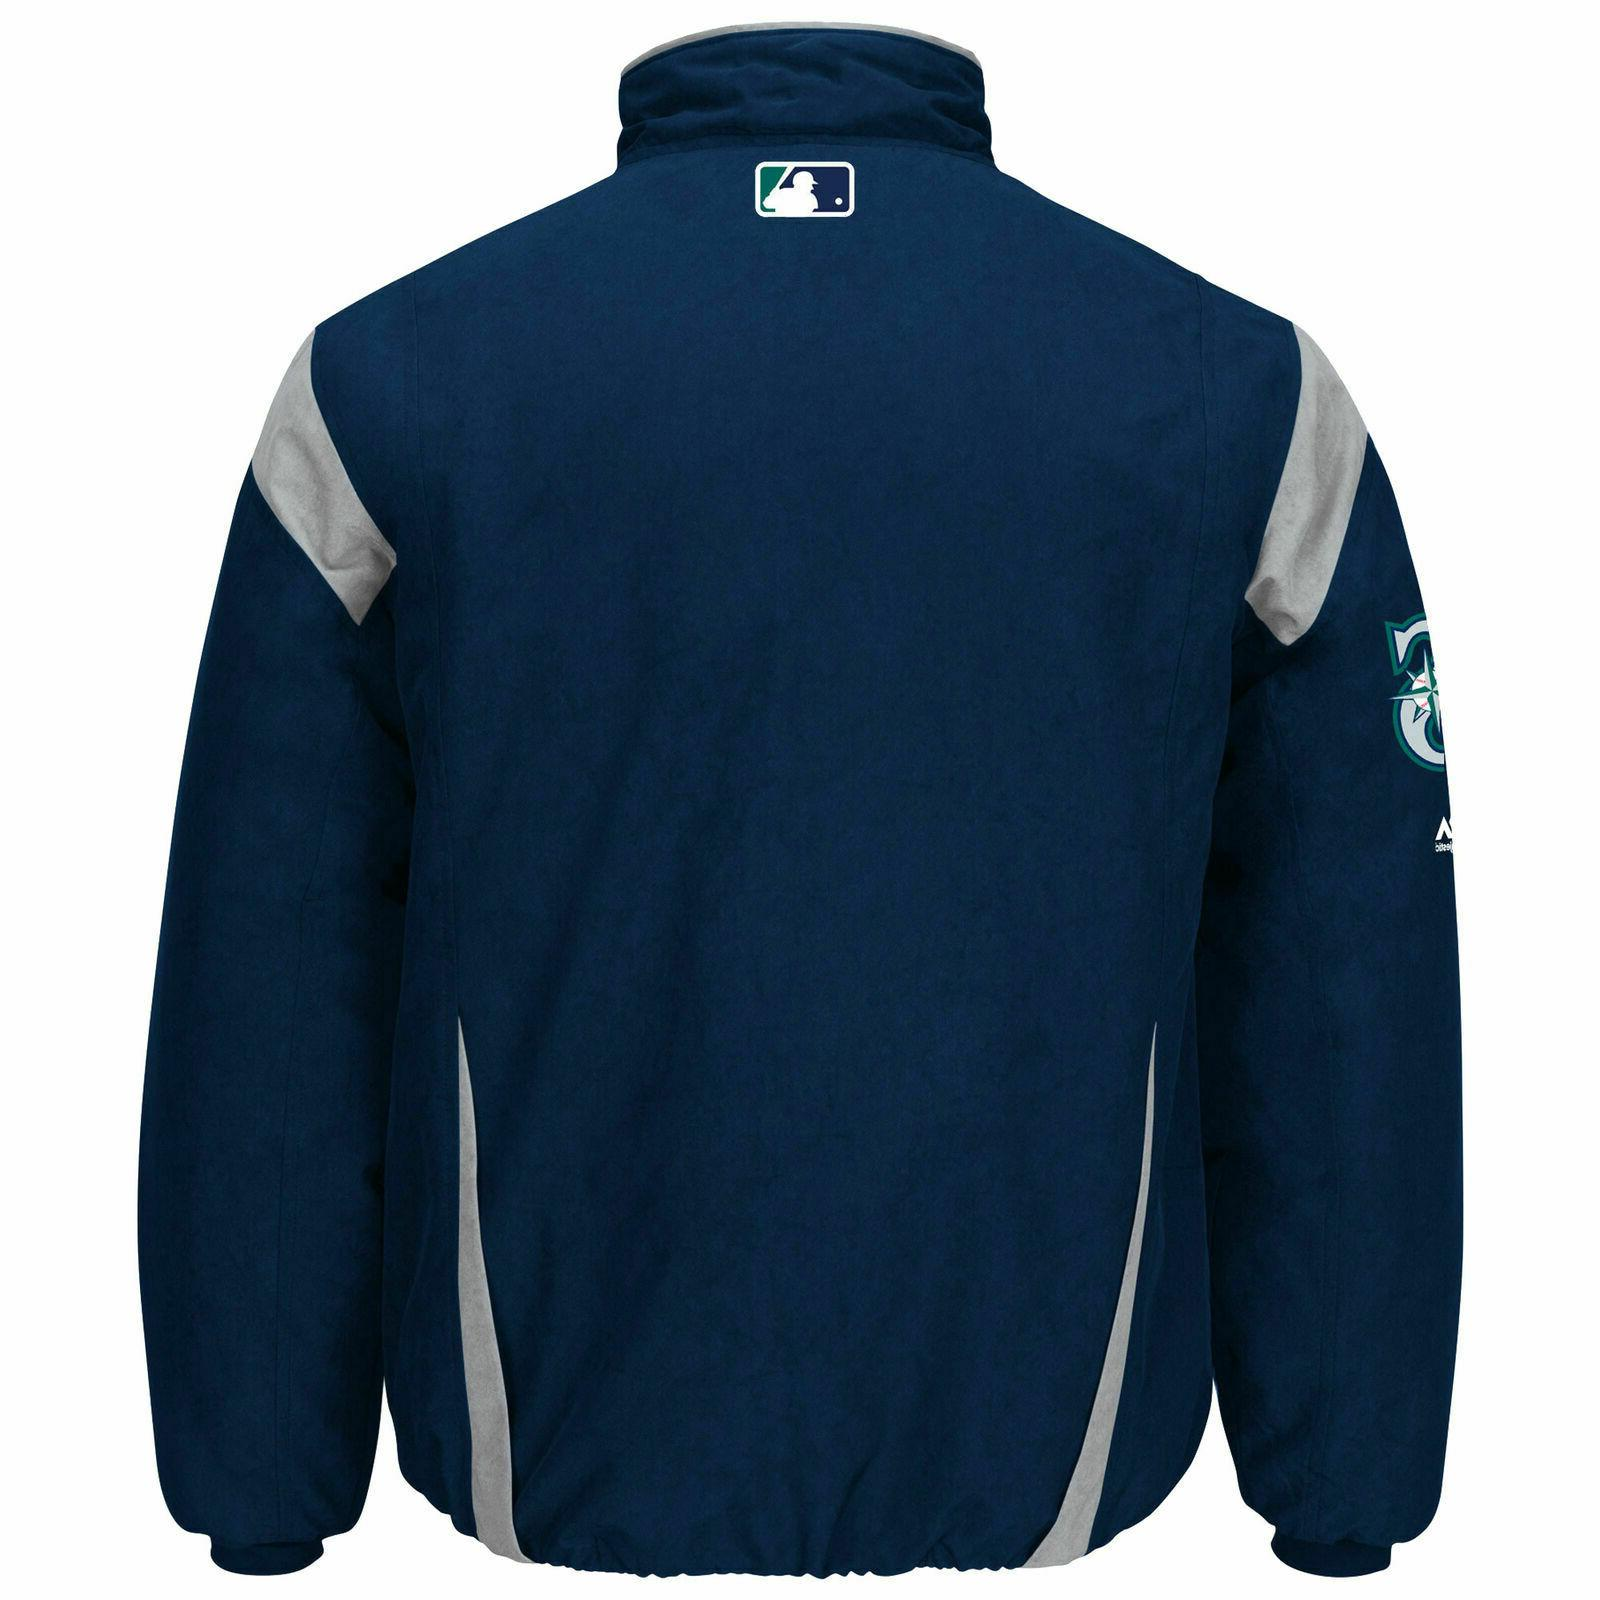 Majestic On-Field Therma Full-Zip Jacket XL